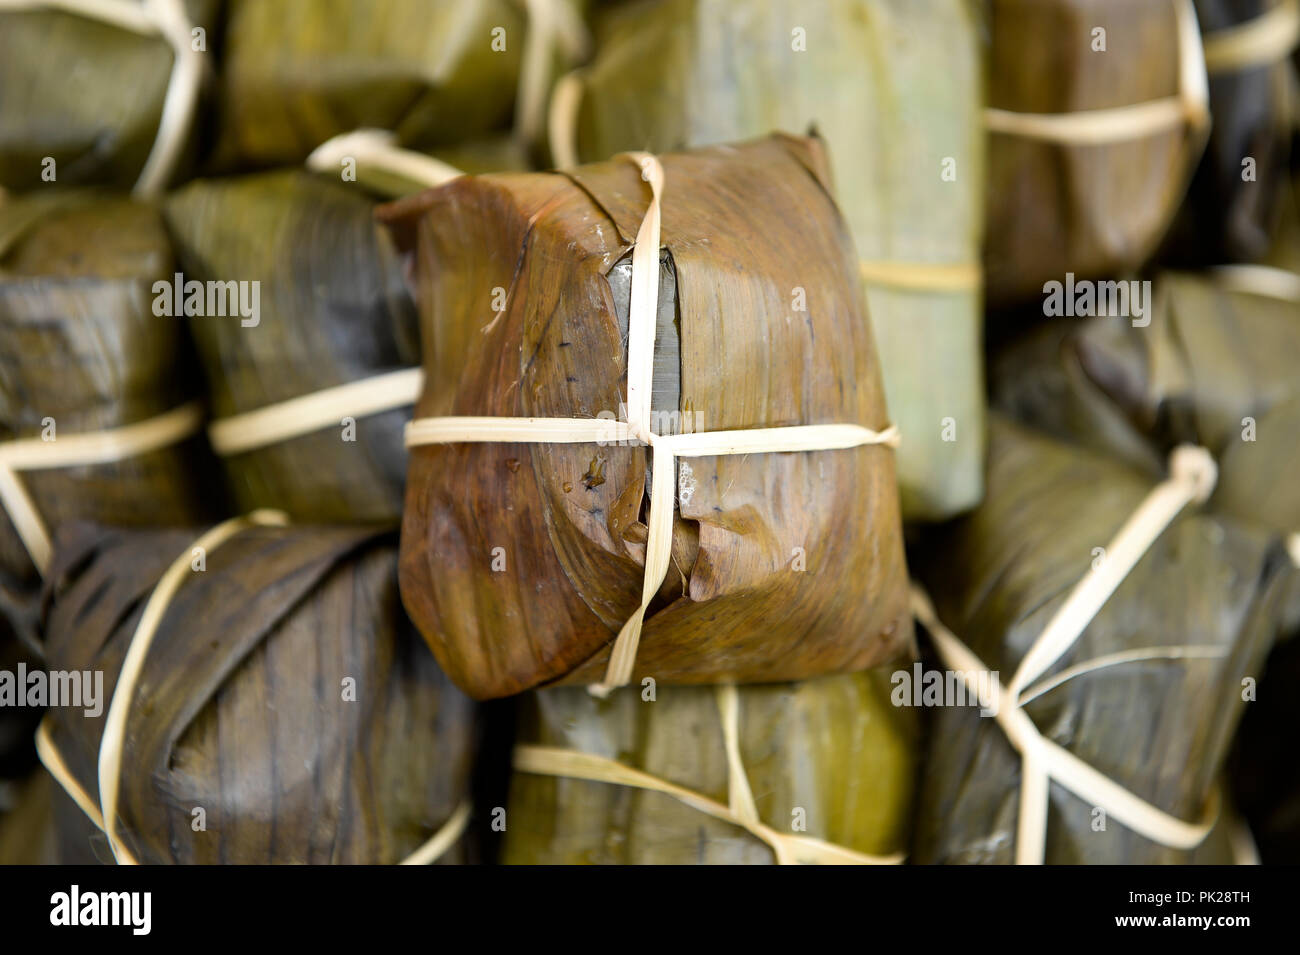 Food Wrapped In Banana Leaves Is Seen On Sale At The Vietnam Culture Festival In Warsaw Poland On September 2 2018 Stock Photo Alamy